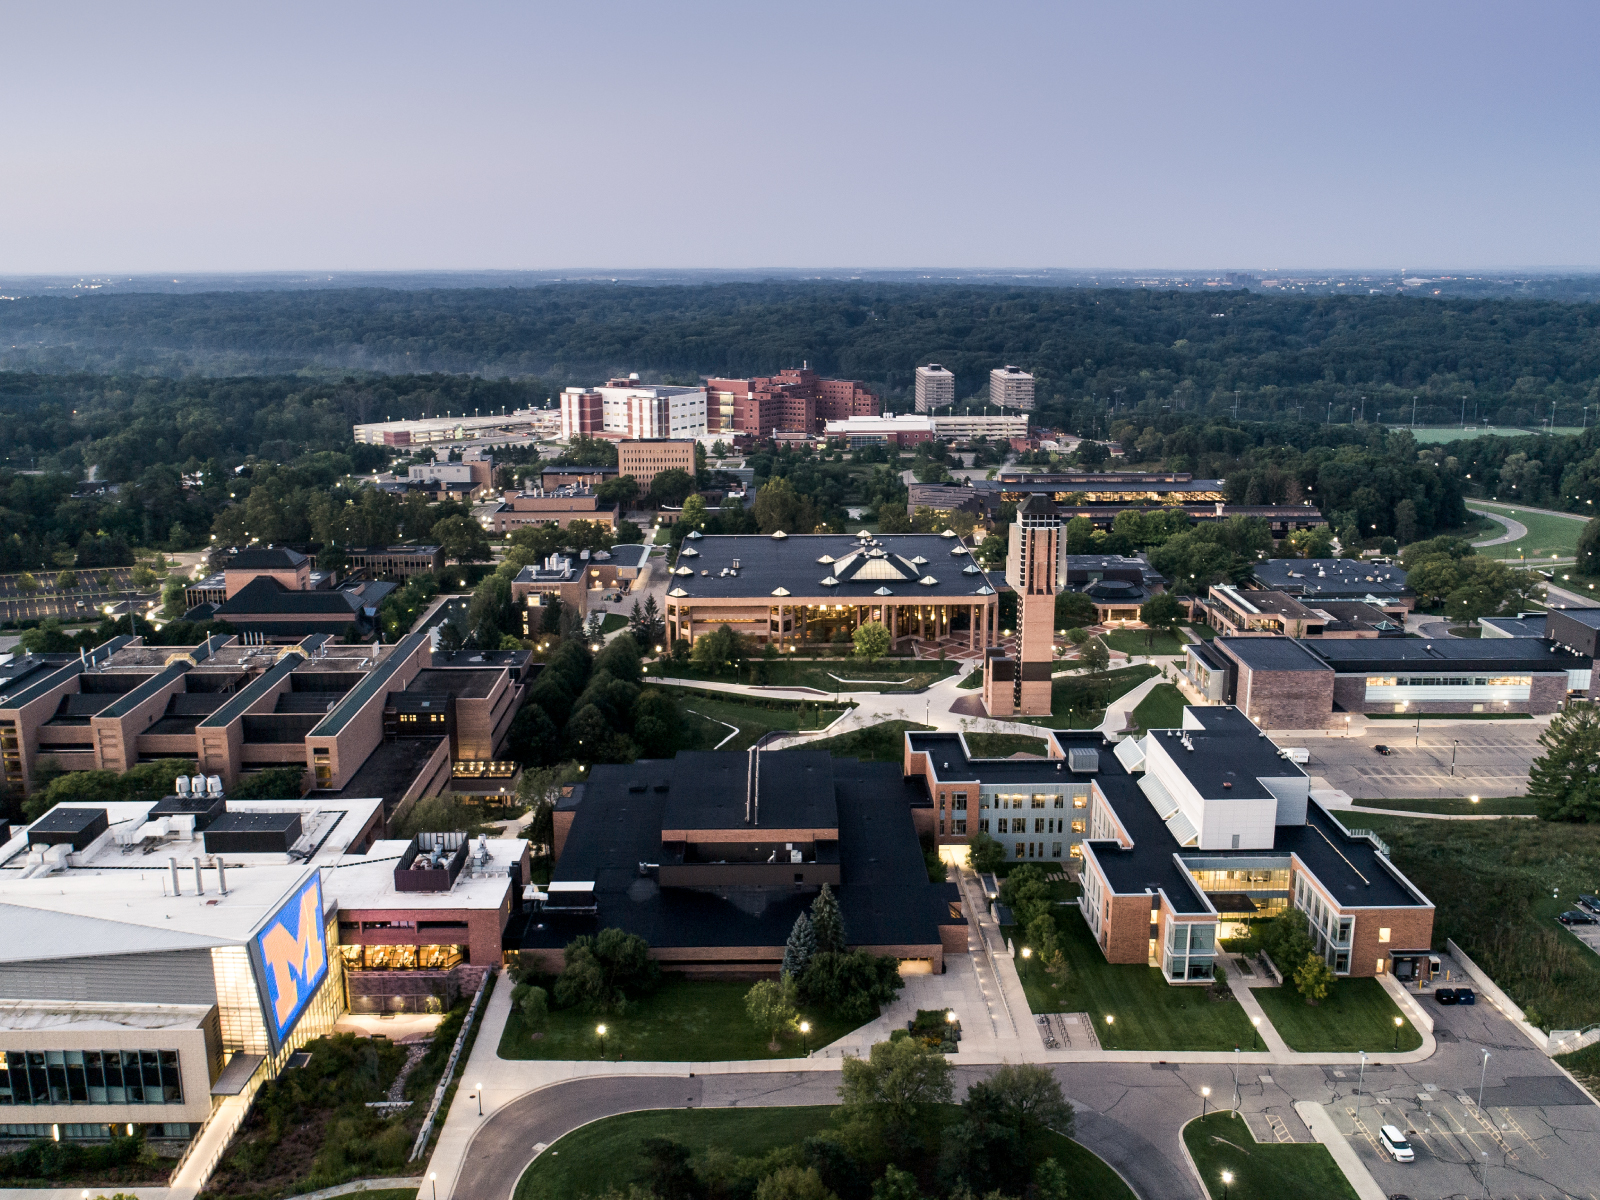 Overhead view of University of Michigan's North Campus showing the Lurie Bell Tower, Duderstadt Center, North Campus Diag, and Engineering buildings.